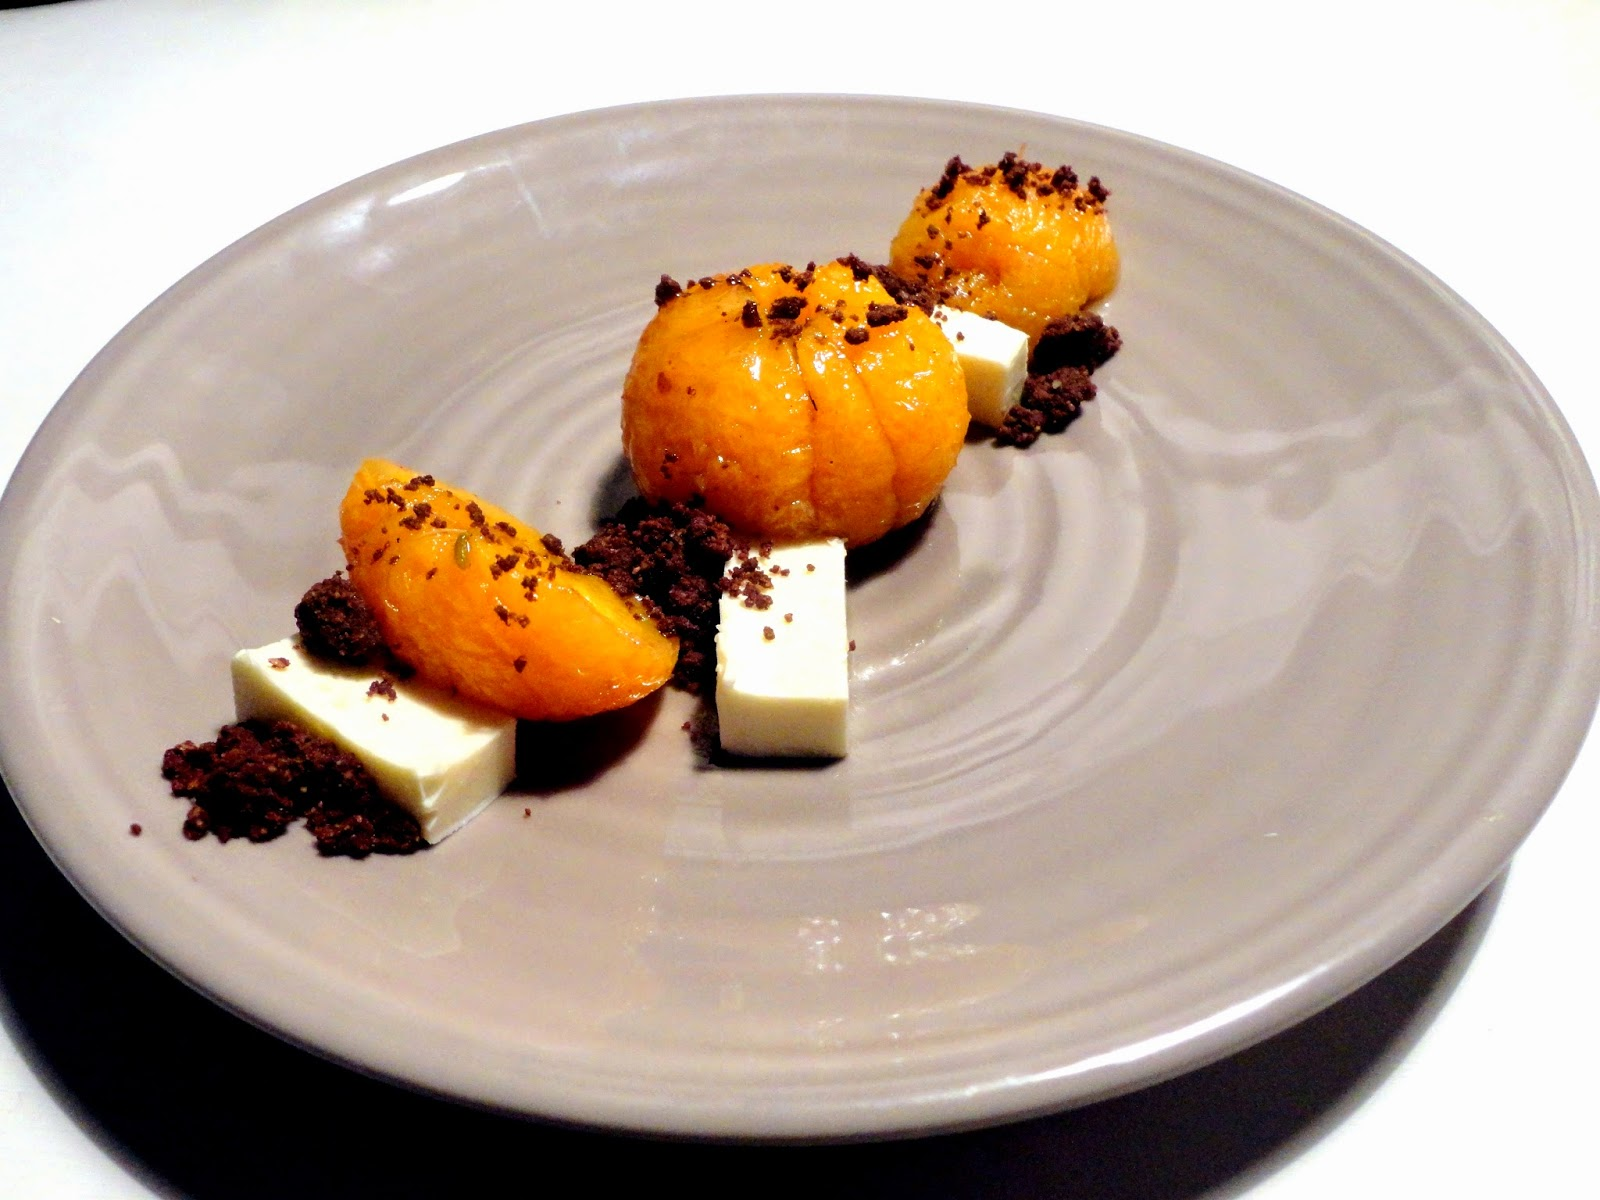 http://emancipations-culinaires.blogspot.com/2015/03/clementine-rotie-gingembre-anis-crumble.html